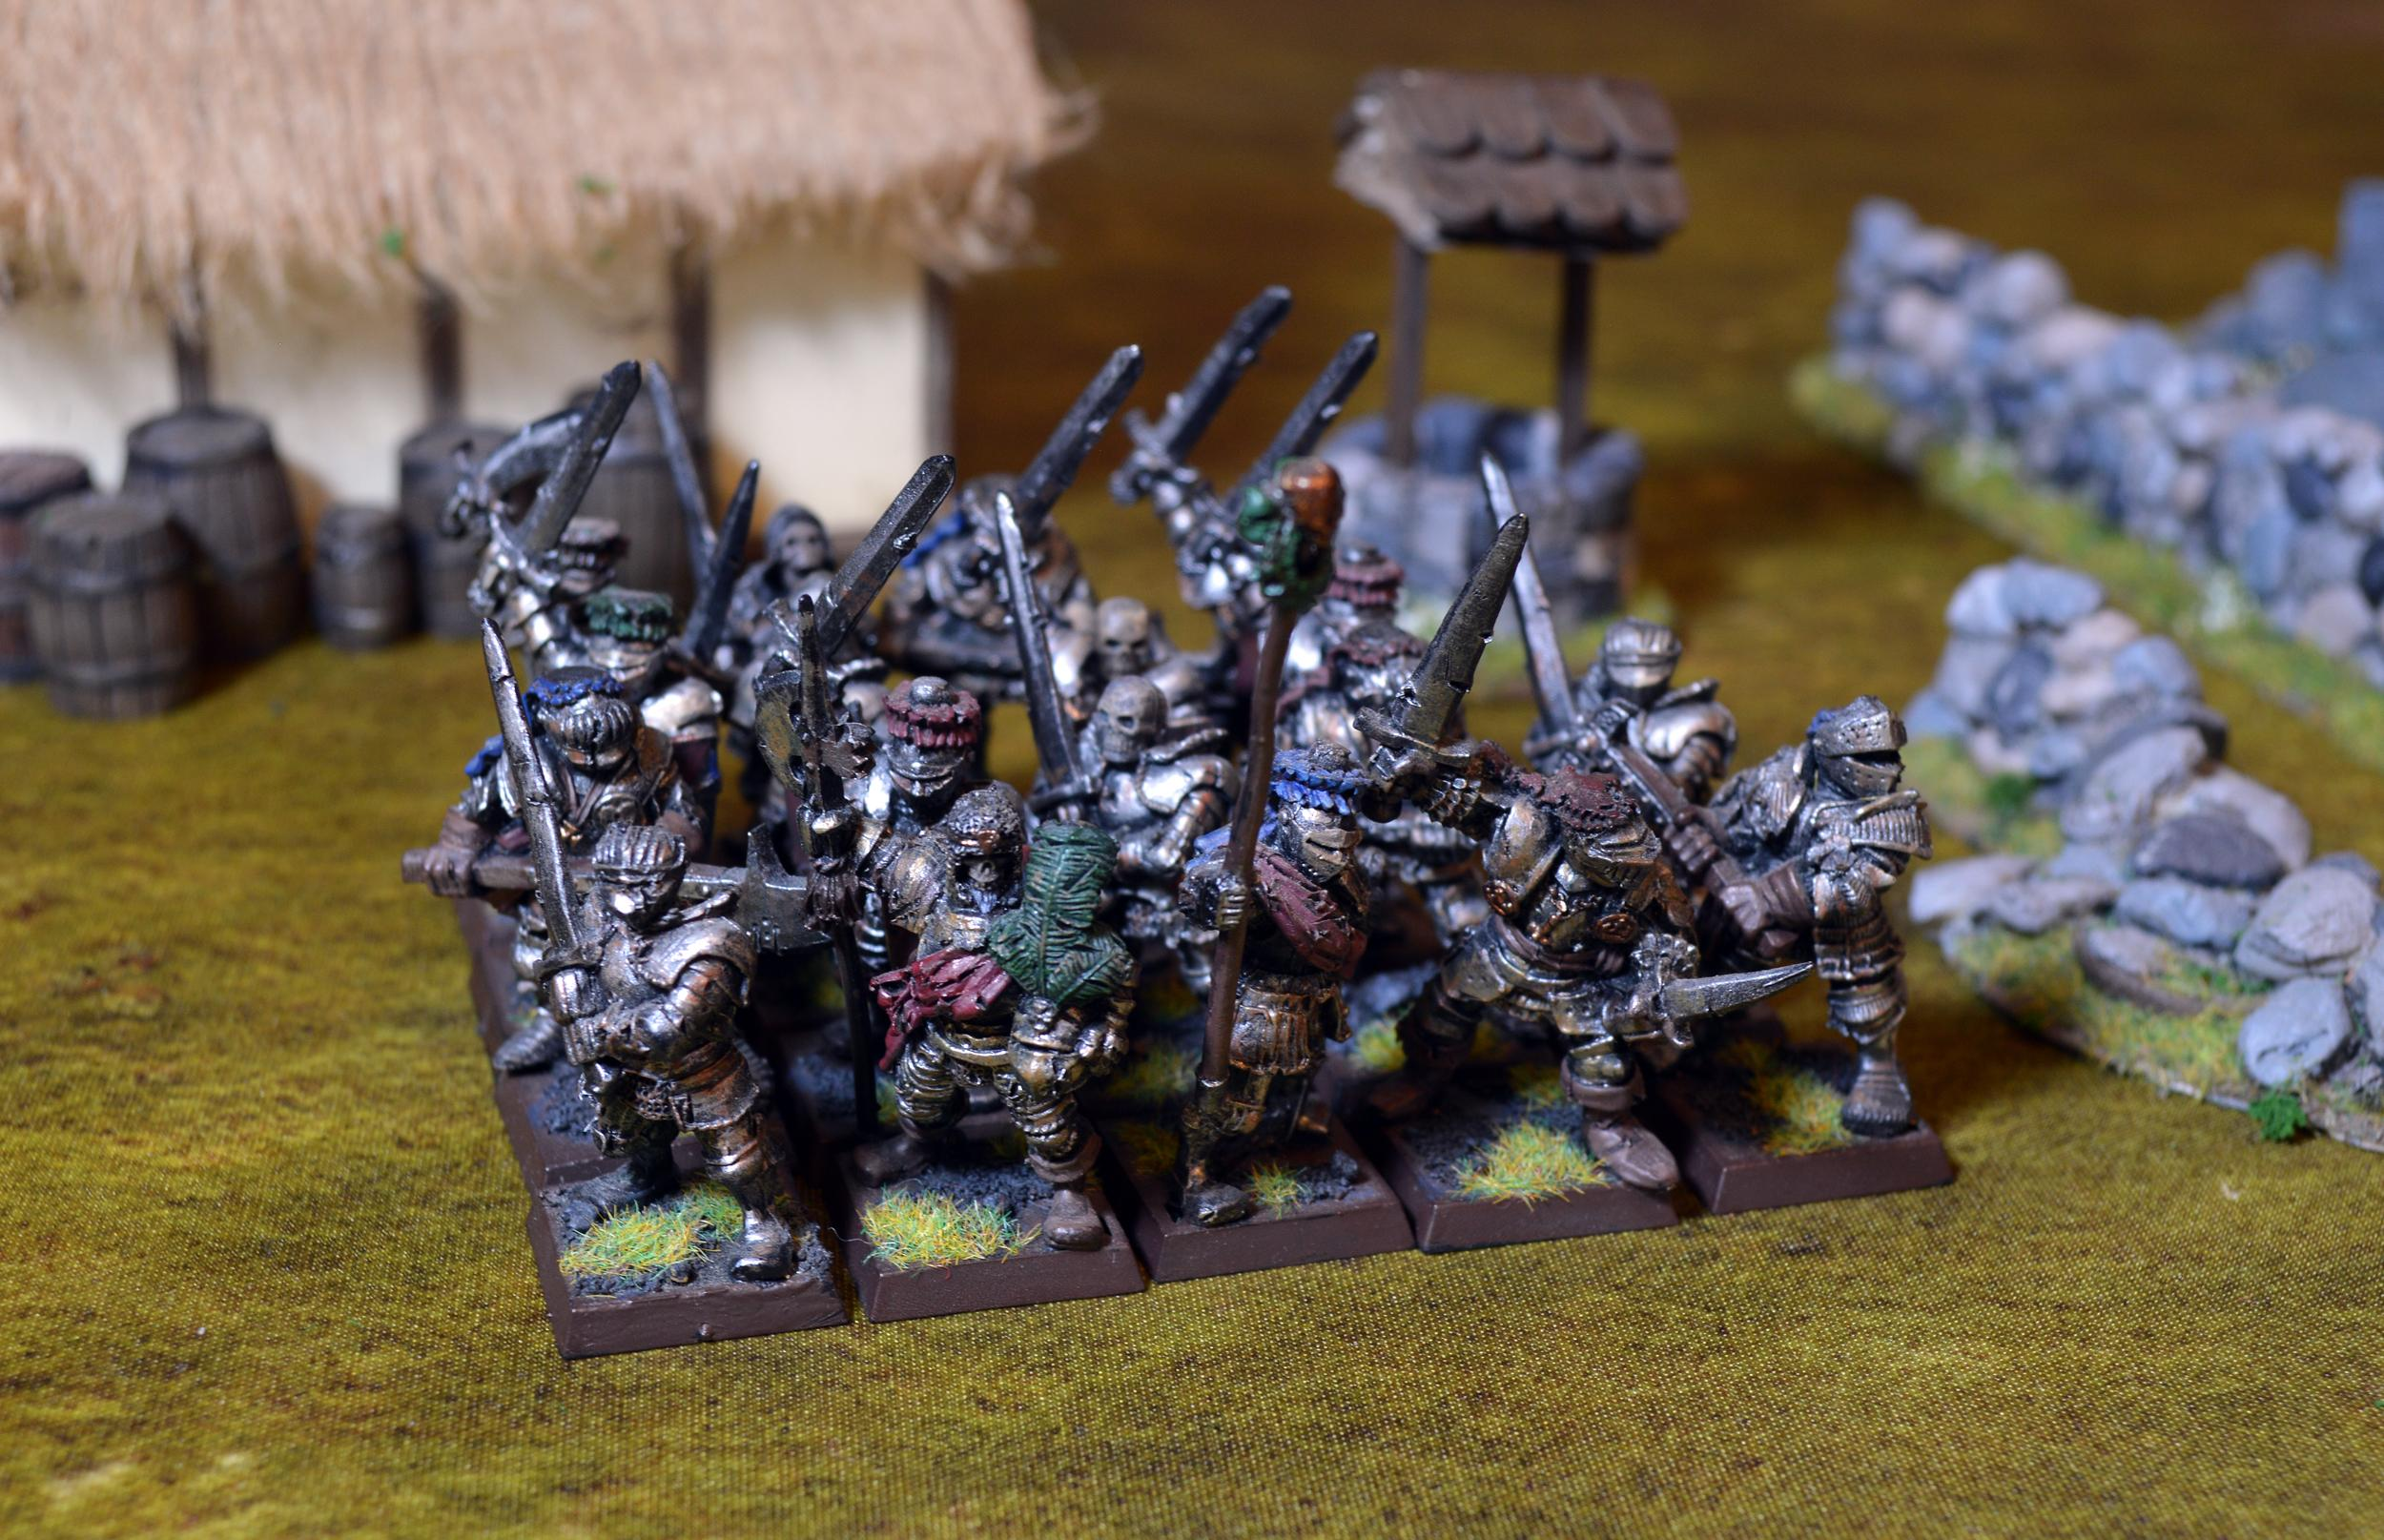 Count's retinue/household guard